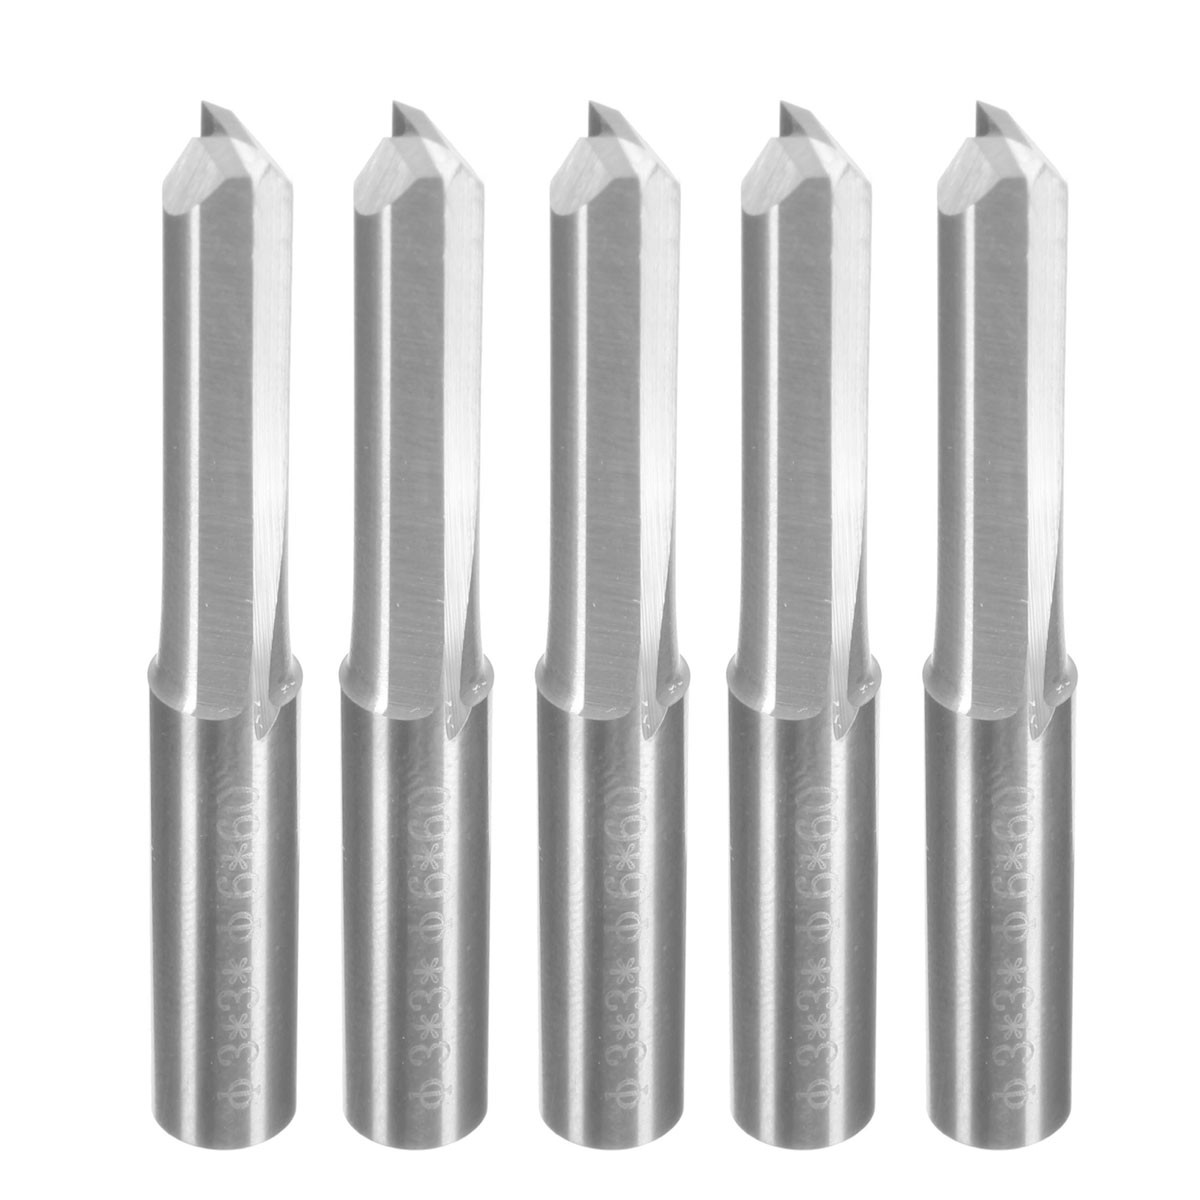 Top Quality 5pcs Set 6mm Double Flute Straight Slot CNC Router Bits Endmill Milling Cutter For